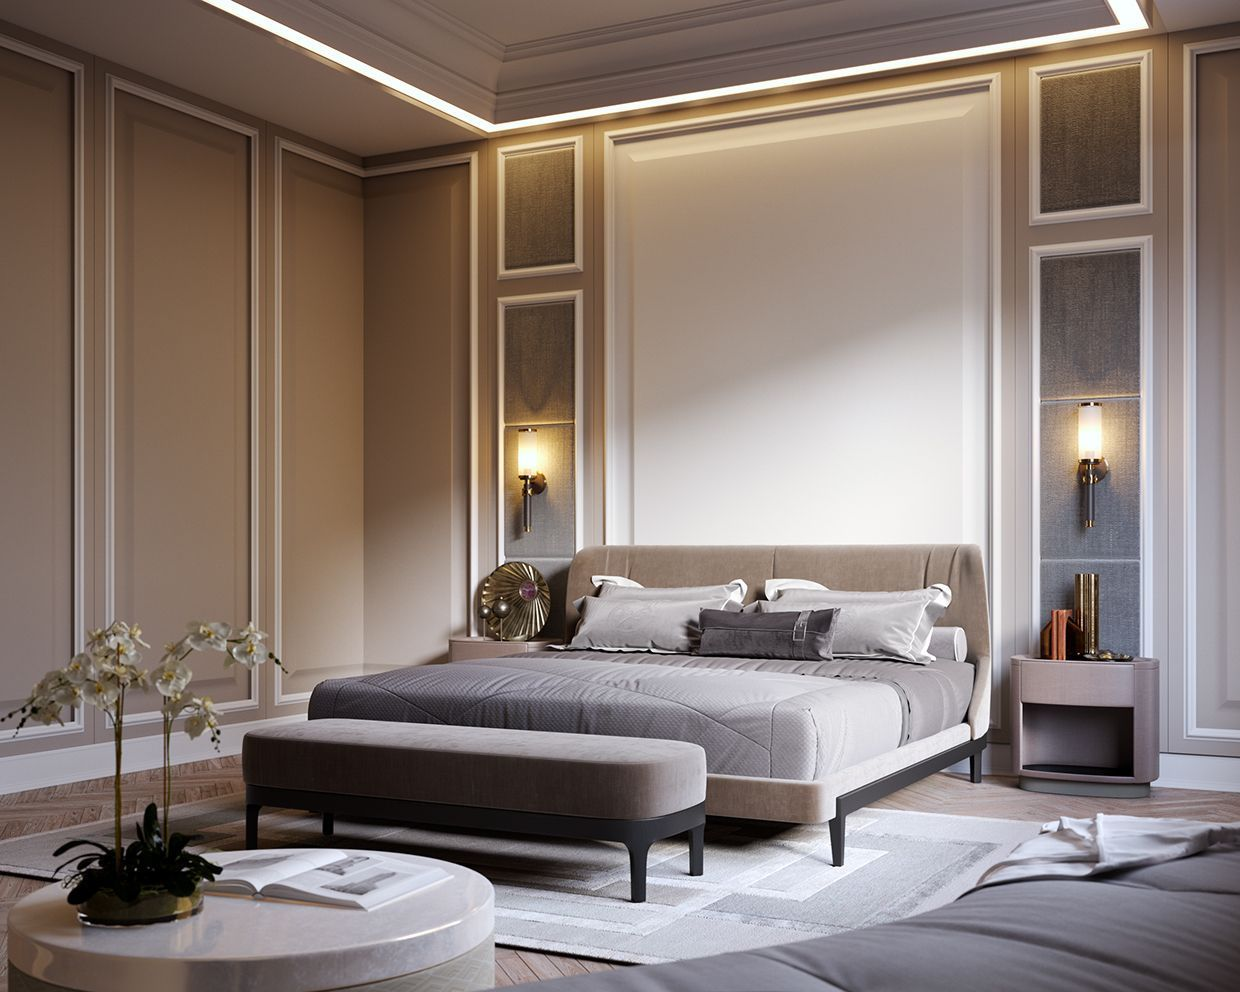 How To Get The Perfect Modern Classic Bedroom Luxuryclassicbedroomdesigns Classic Bedroom Design Modern Classic Bedroom Classic Bedroom